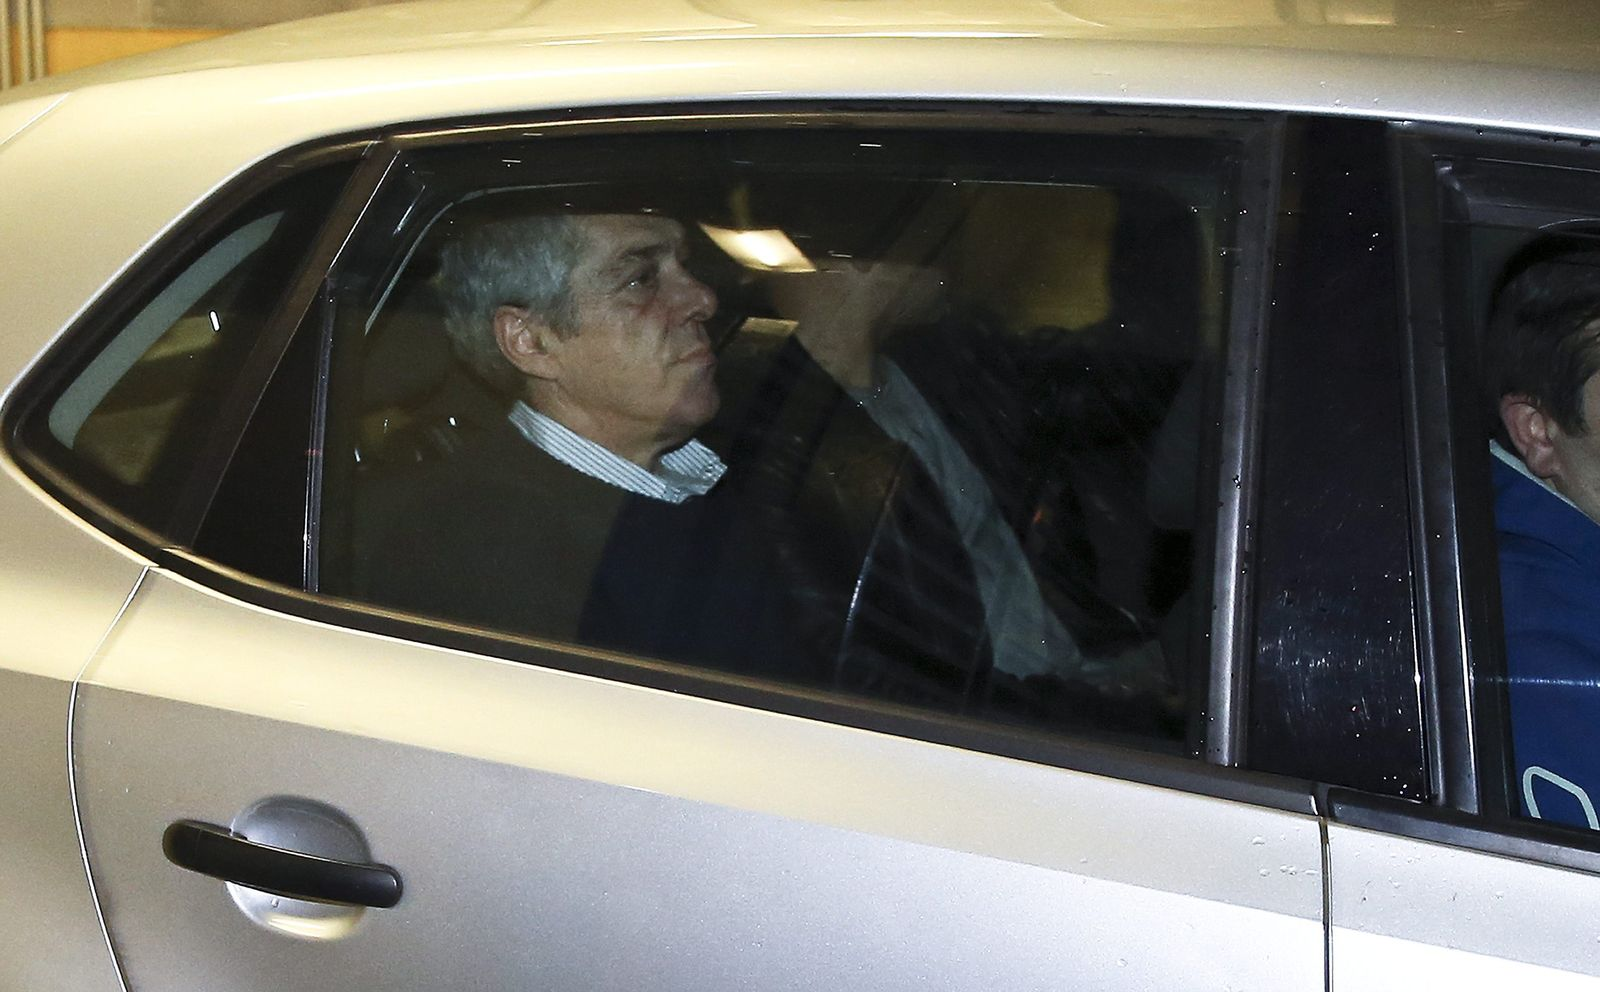 Portugals former Socialist prime minister Jose Socrates detained